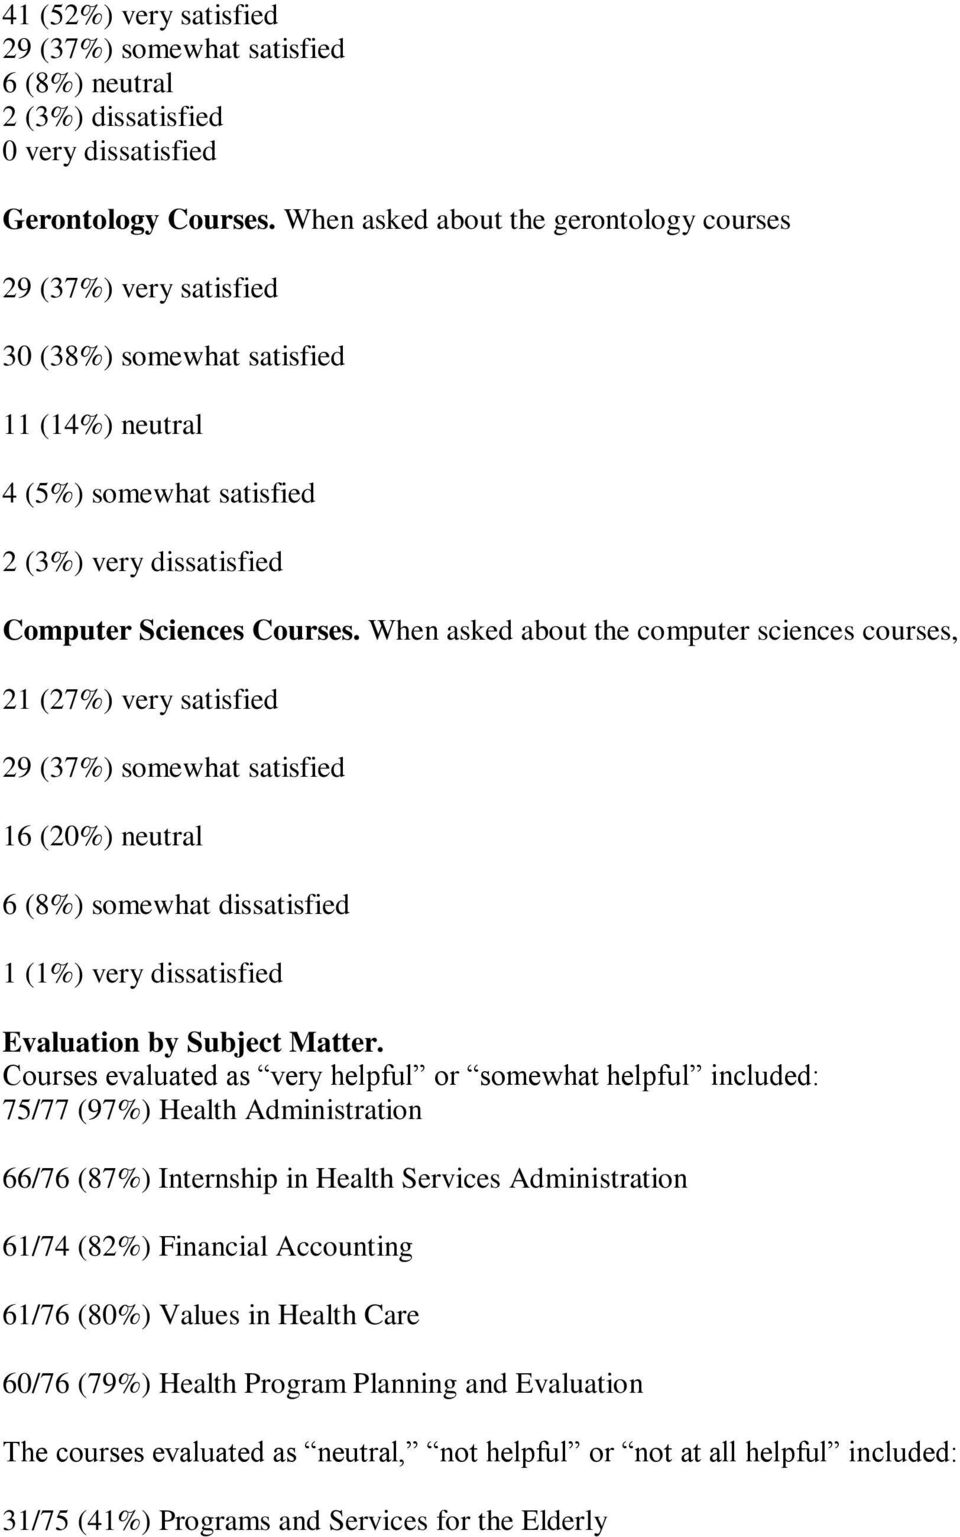 When asked about the computer sciences courses, 21 (27%) very satisfied 29 (37%) somewhat satisfied 16 (20%) neutral 6 (8%) somewhat dissatisfied 1 (1%) very dissatisfied Evaluation by Subject Matter.